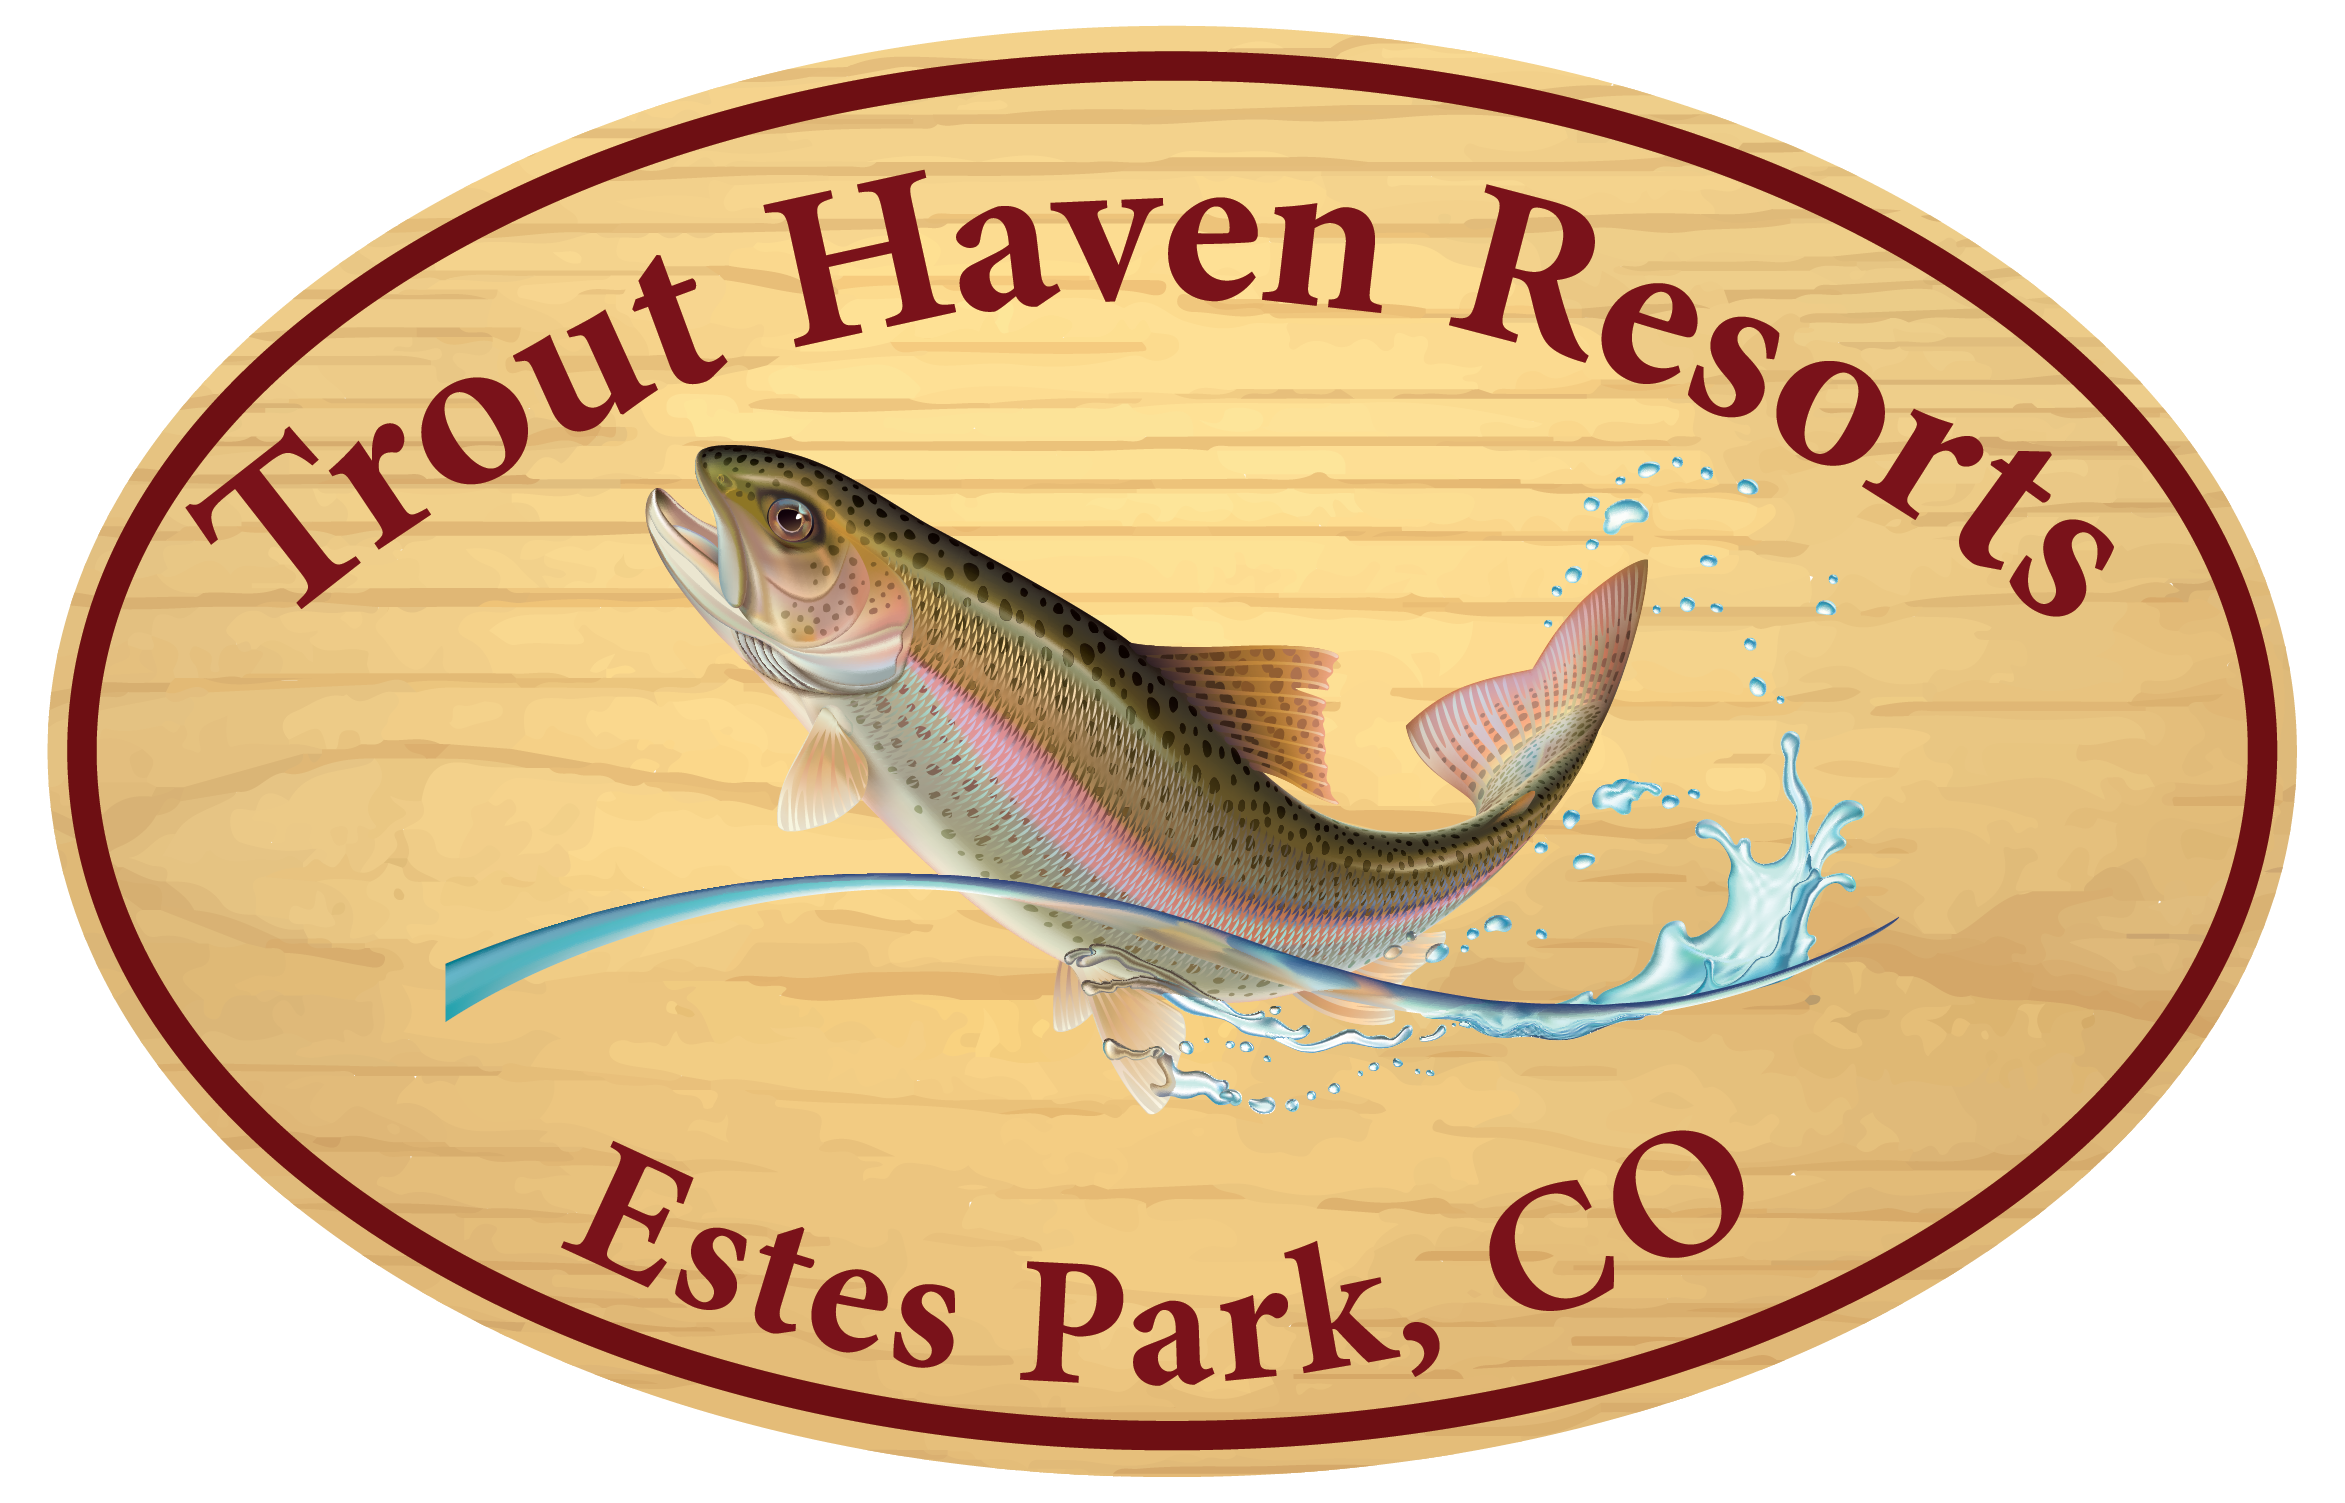 Trout Haven Resorts